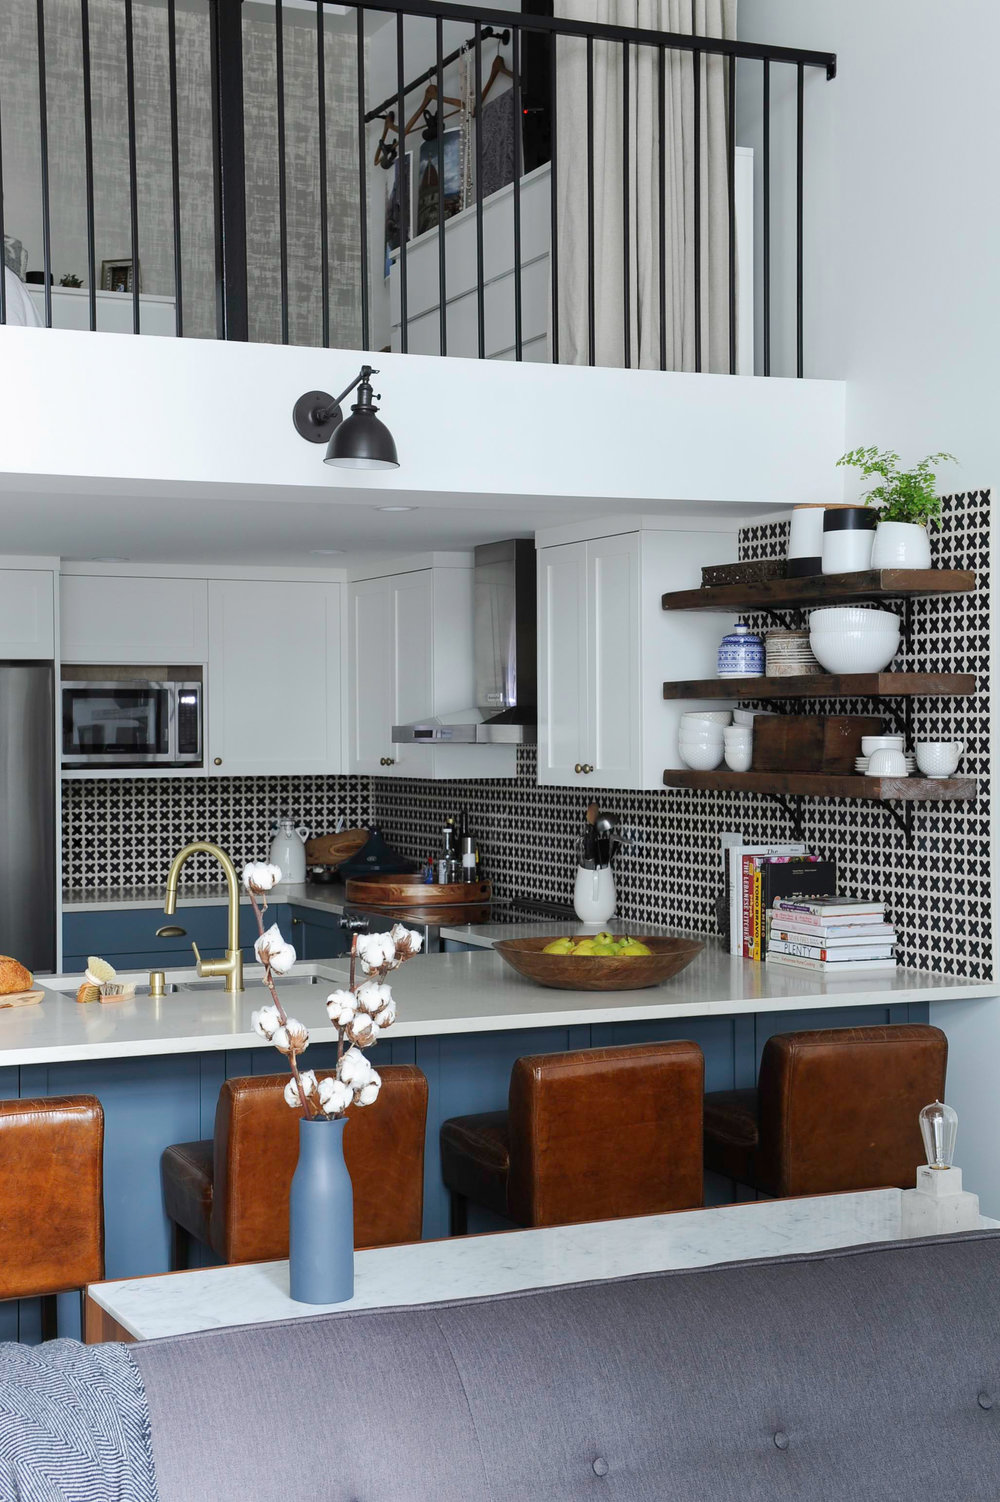 A sunlit kitchen in a loft space, with blue kitchen counters and white countertops, leather bar chairs and a black and white patterned tiled wall.